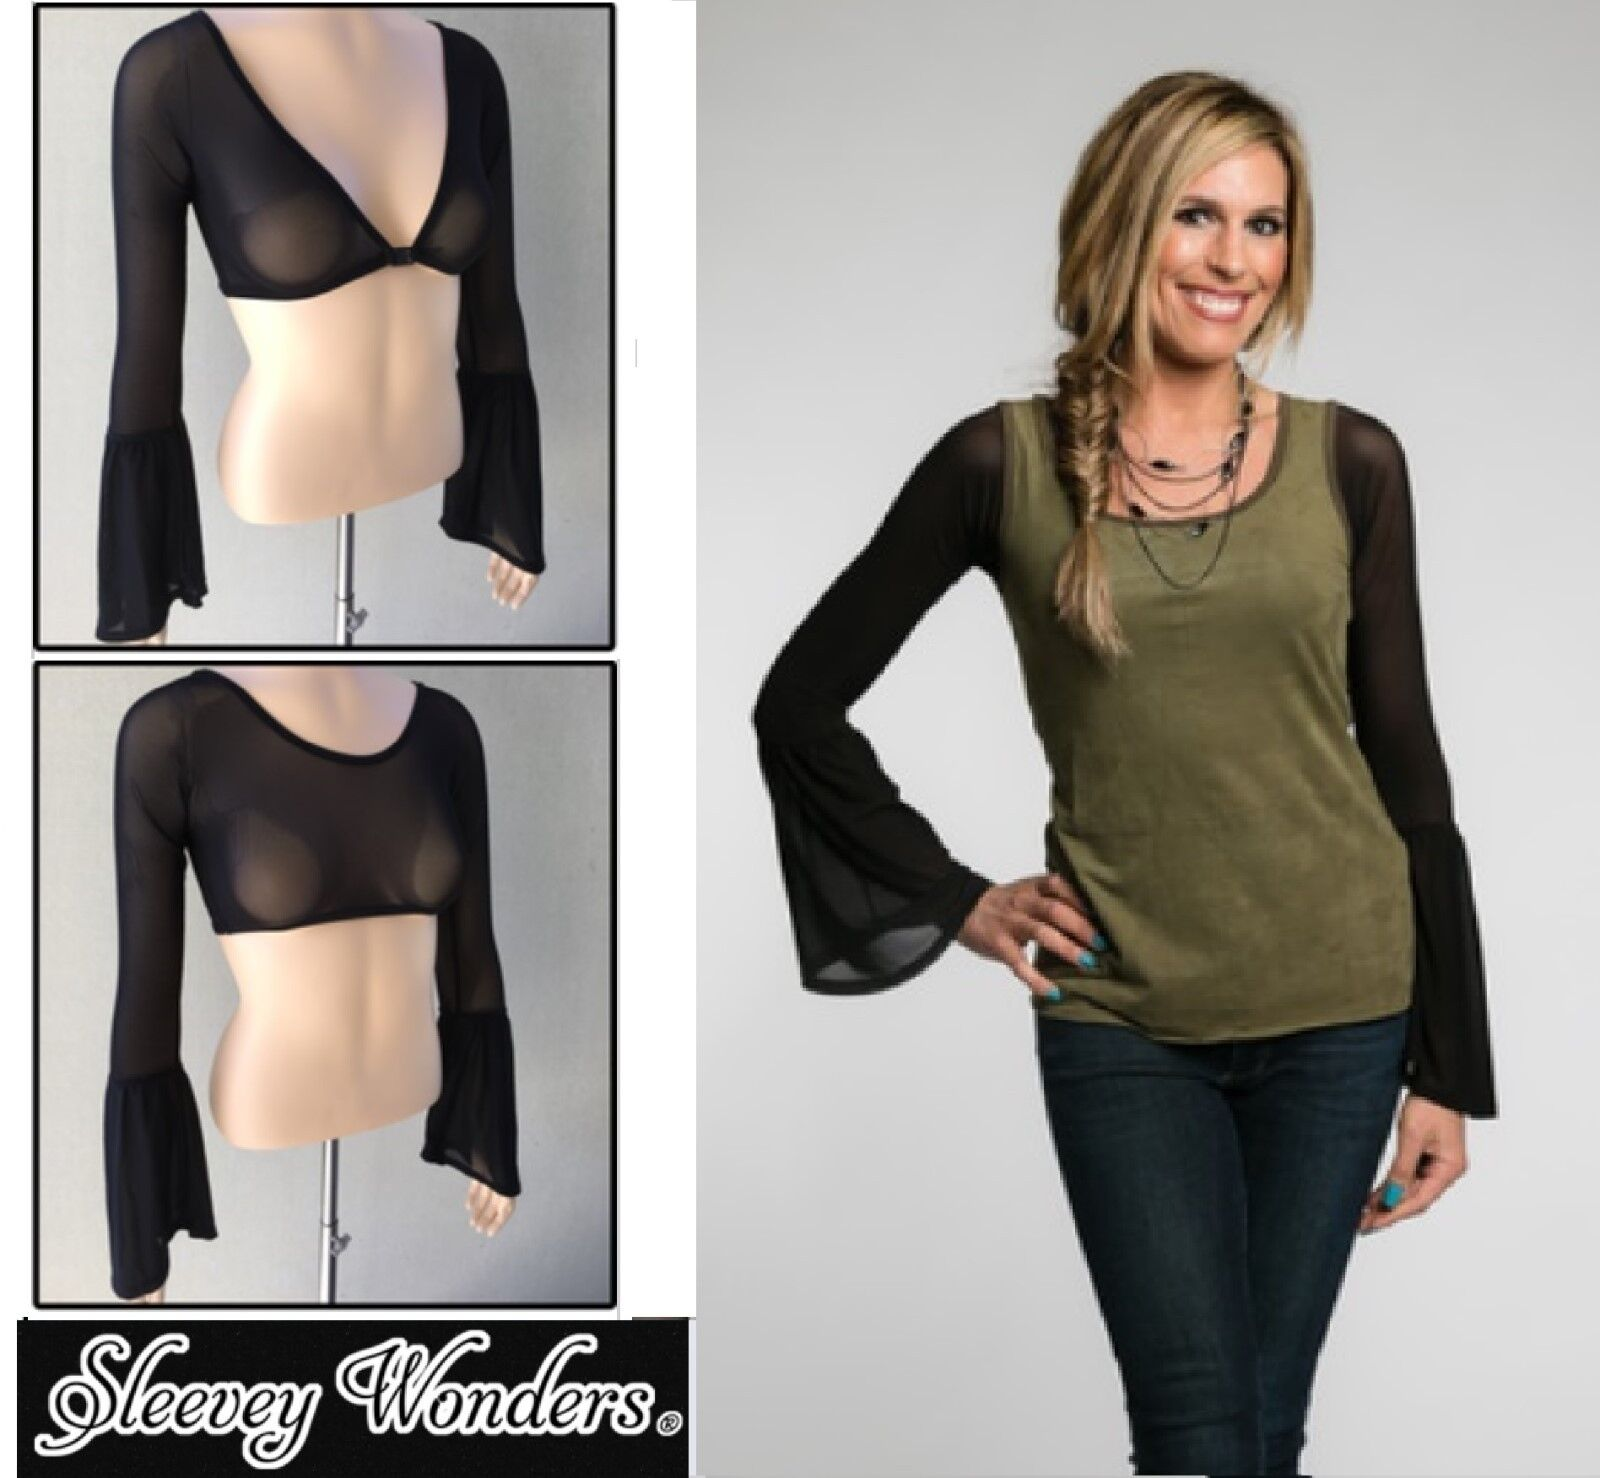 3a001ca353a83 Details about SLEEVEY WONDERS 40703 Long BELL-Sleeve SHAPEWEAR SLEEVES TOP  Stretch MESH BLACK